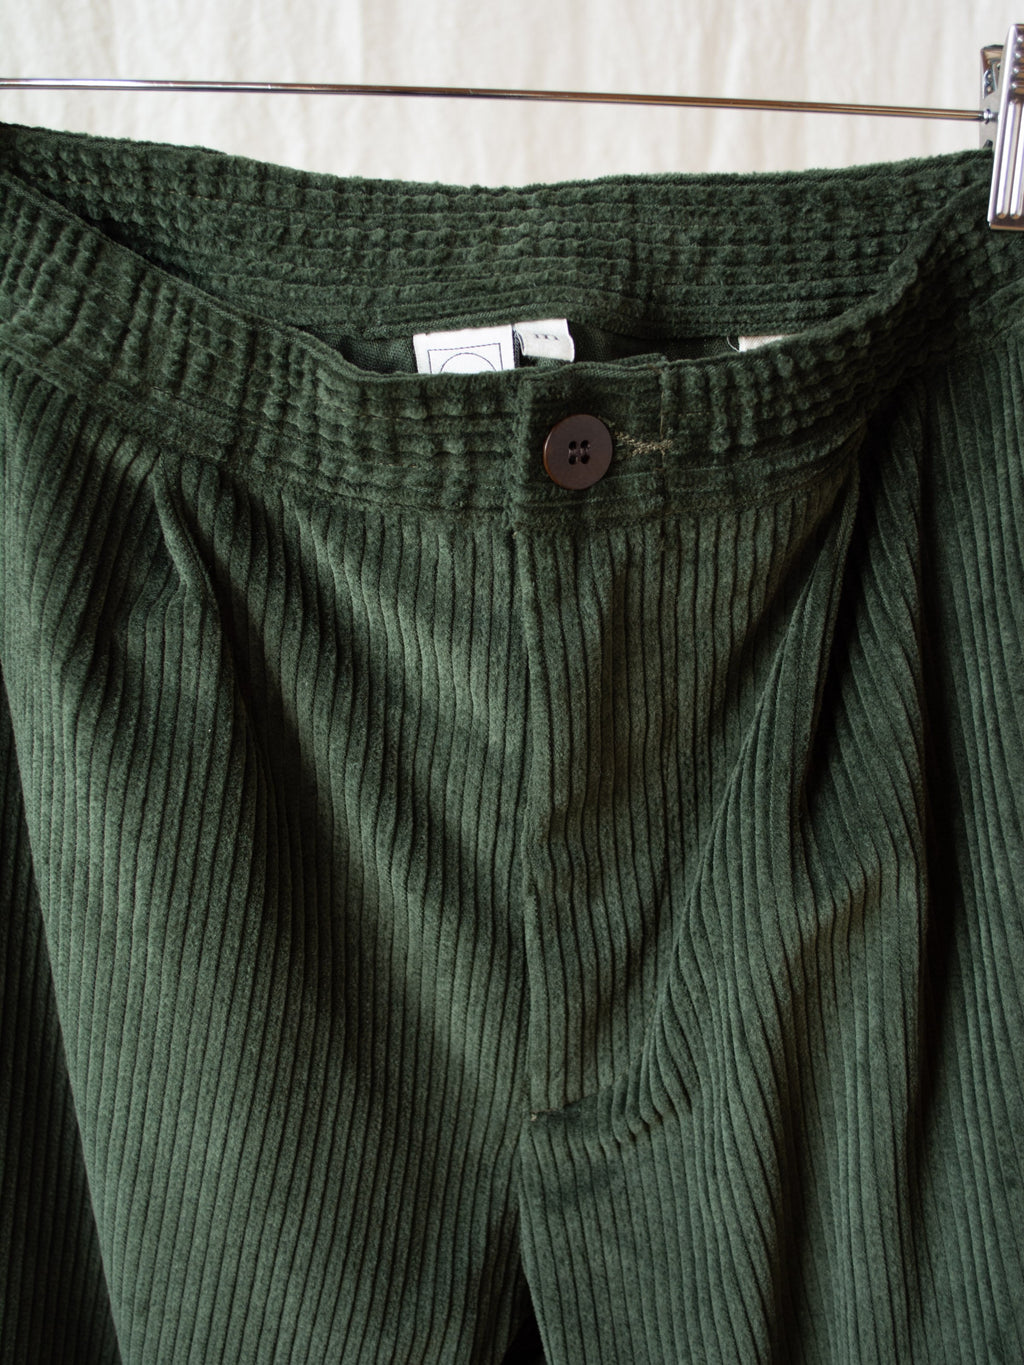 Namu Shop - paa Extra Wide Wale Corduroy Trouser - Forest Green